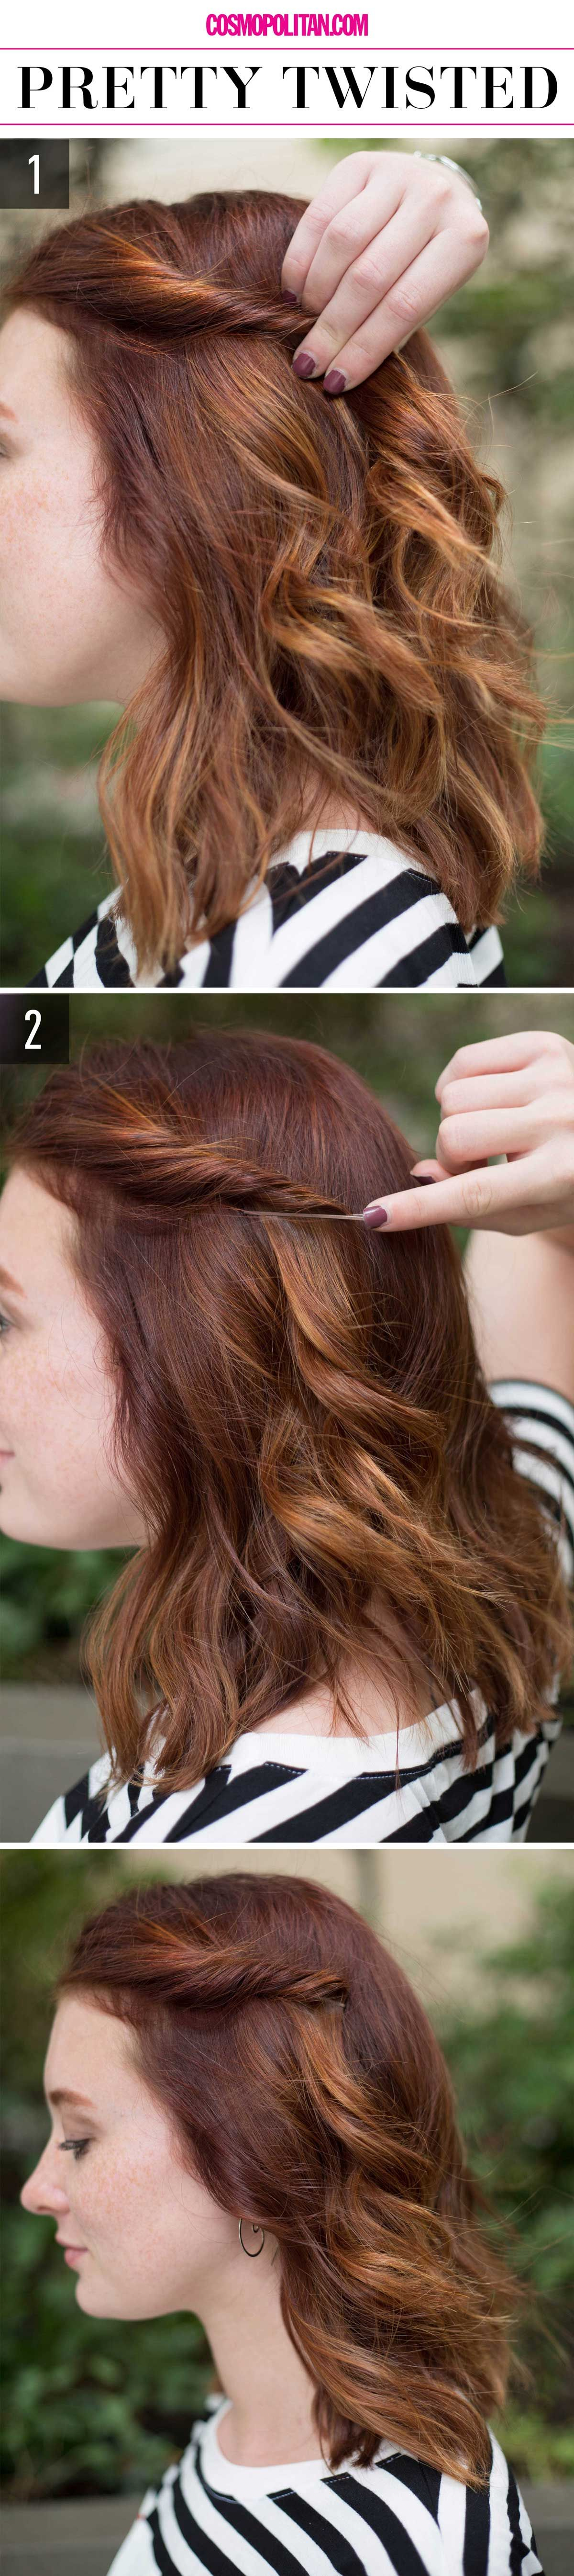 15 Super Easy Hairstyles For When You re Feeling Particularly Lazy